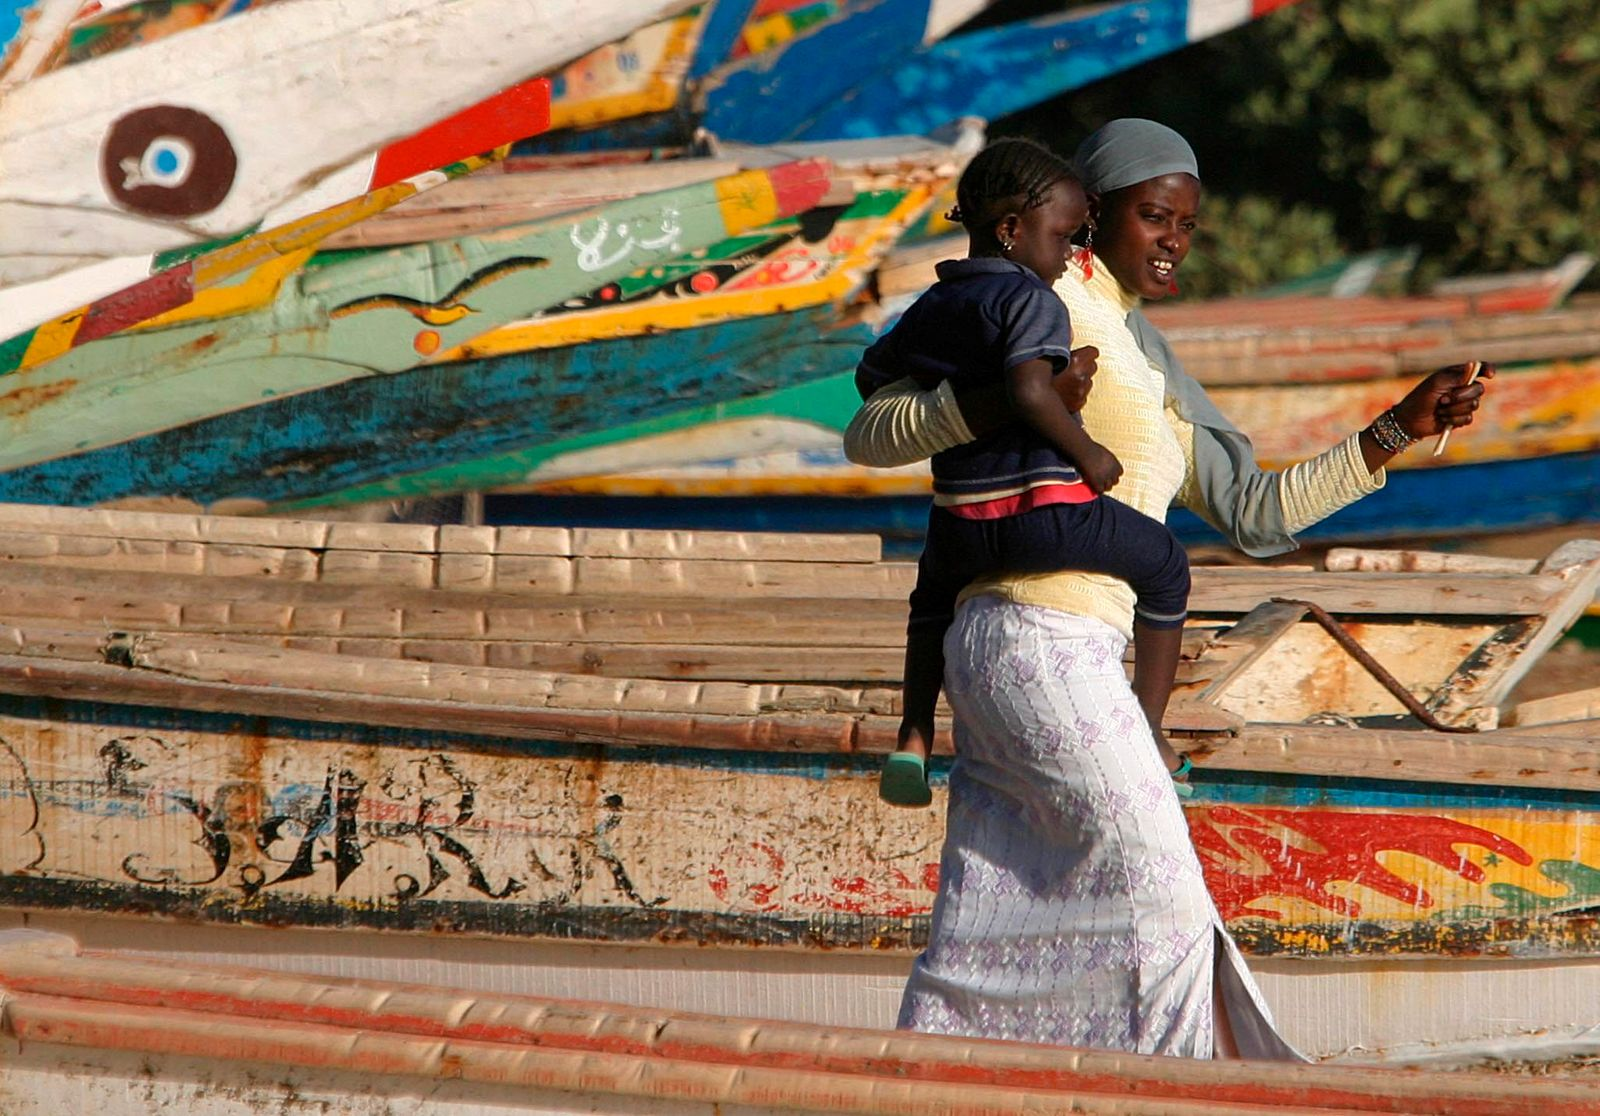 Senegal has one of the lowest HIV/Aids infection rates in Africa